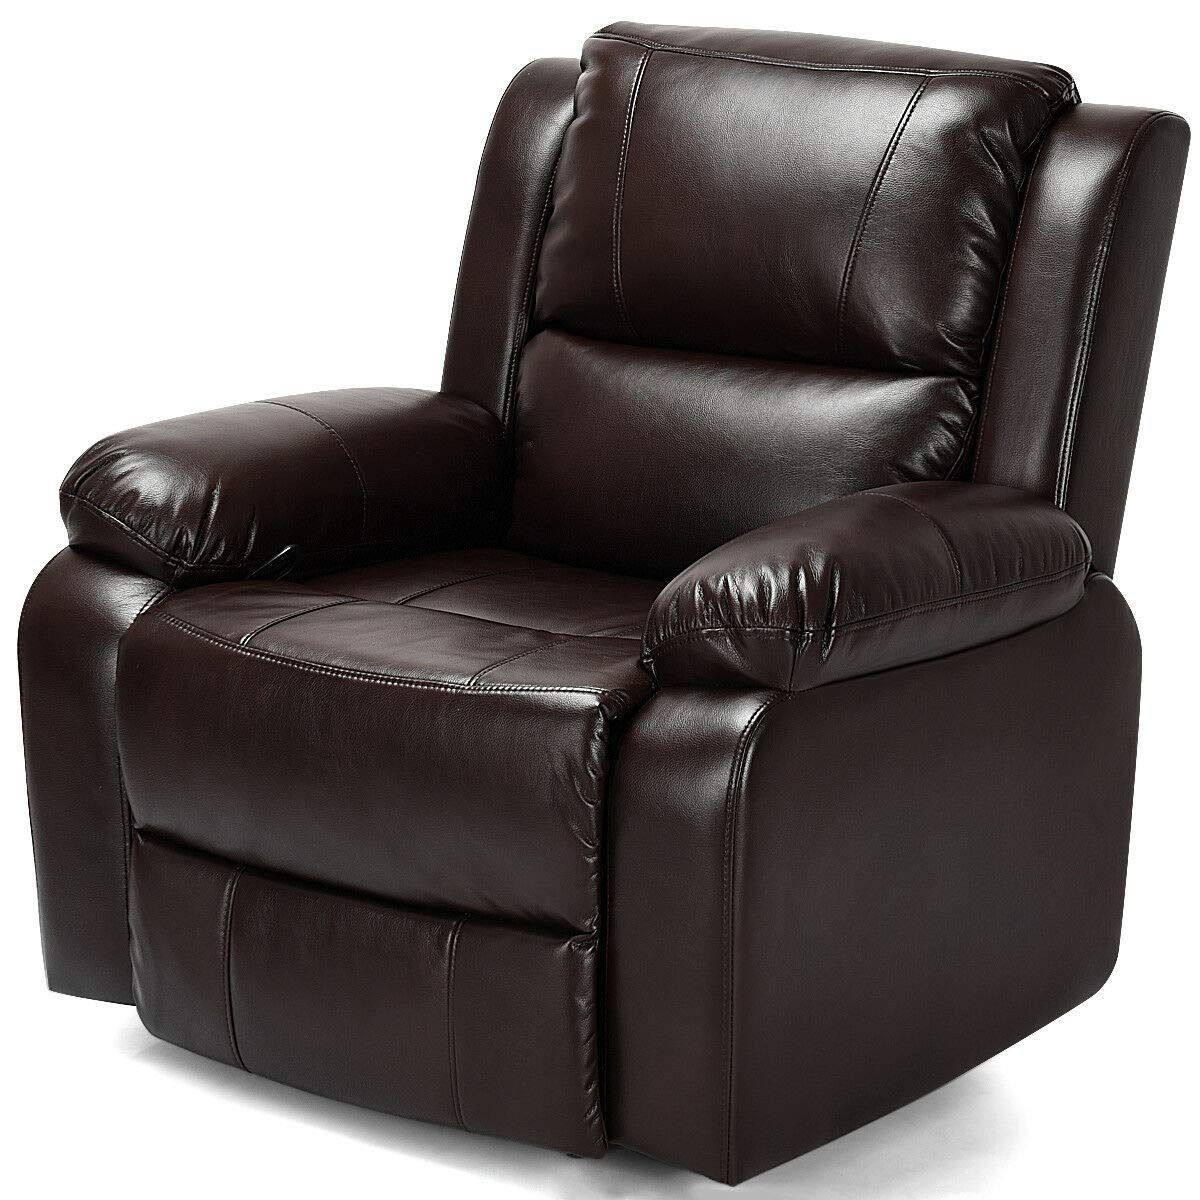 Manual Recliner Chair Lounge Sofa Pu Leather Padded Home Theater Reclining Brown Manual Recliner Chair Lift Chair Recliners Recliner Chair